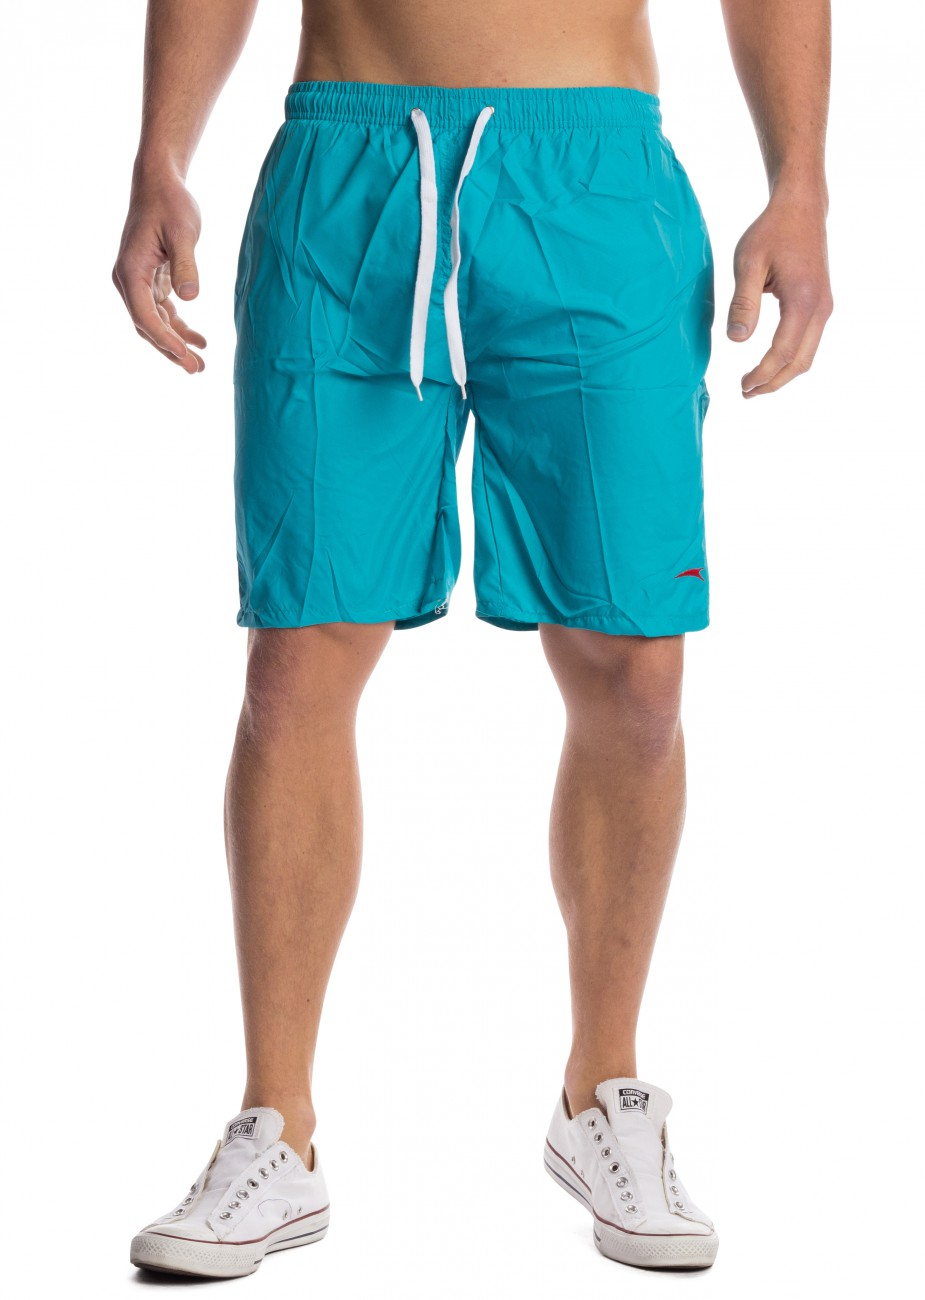 badeshorts herren shorts kurze hose bermuda badehose kurz sommer schwimmhose ebay. Black Bedroom Furniture Sets. Home Design Ideas